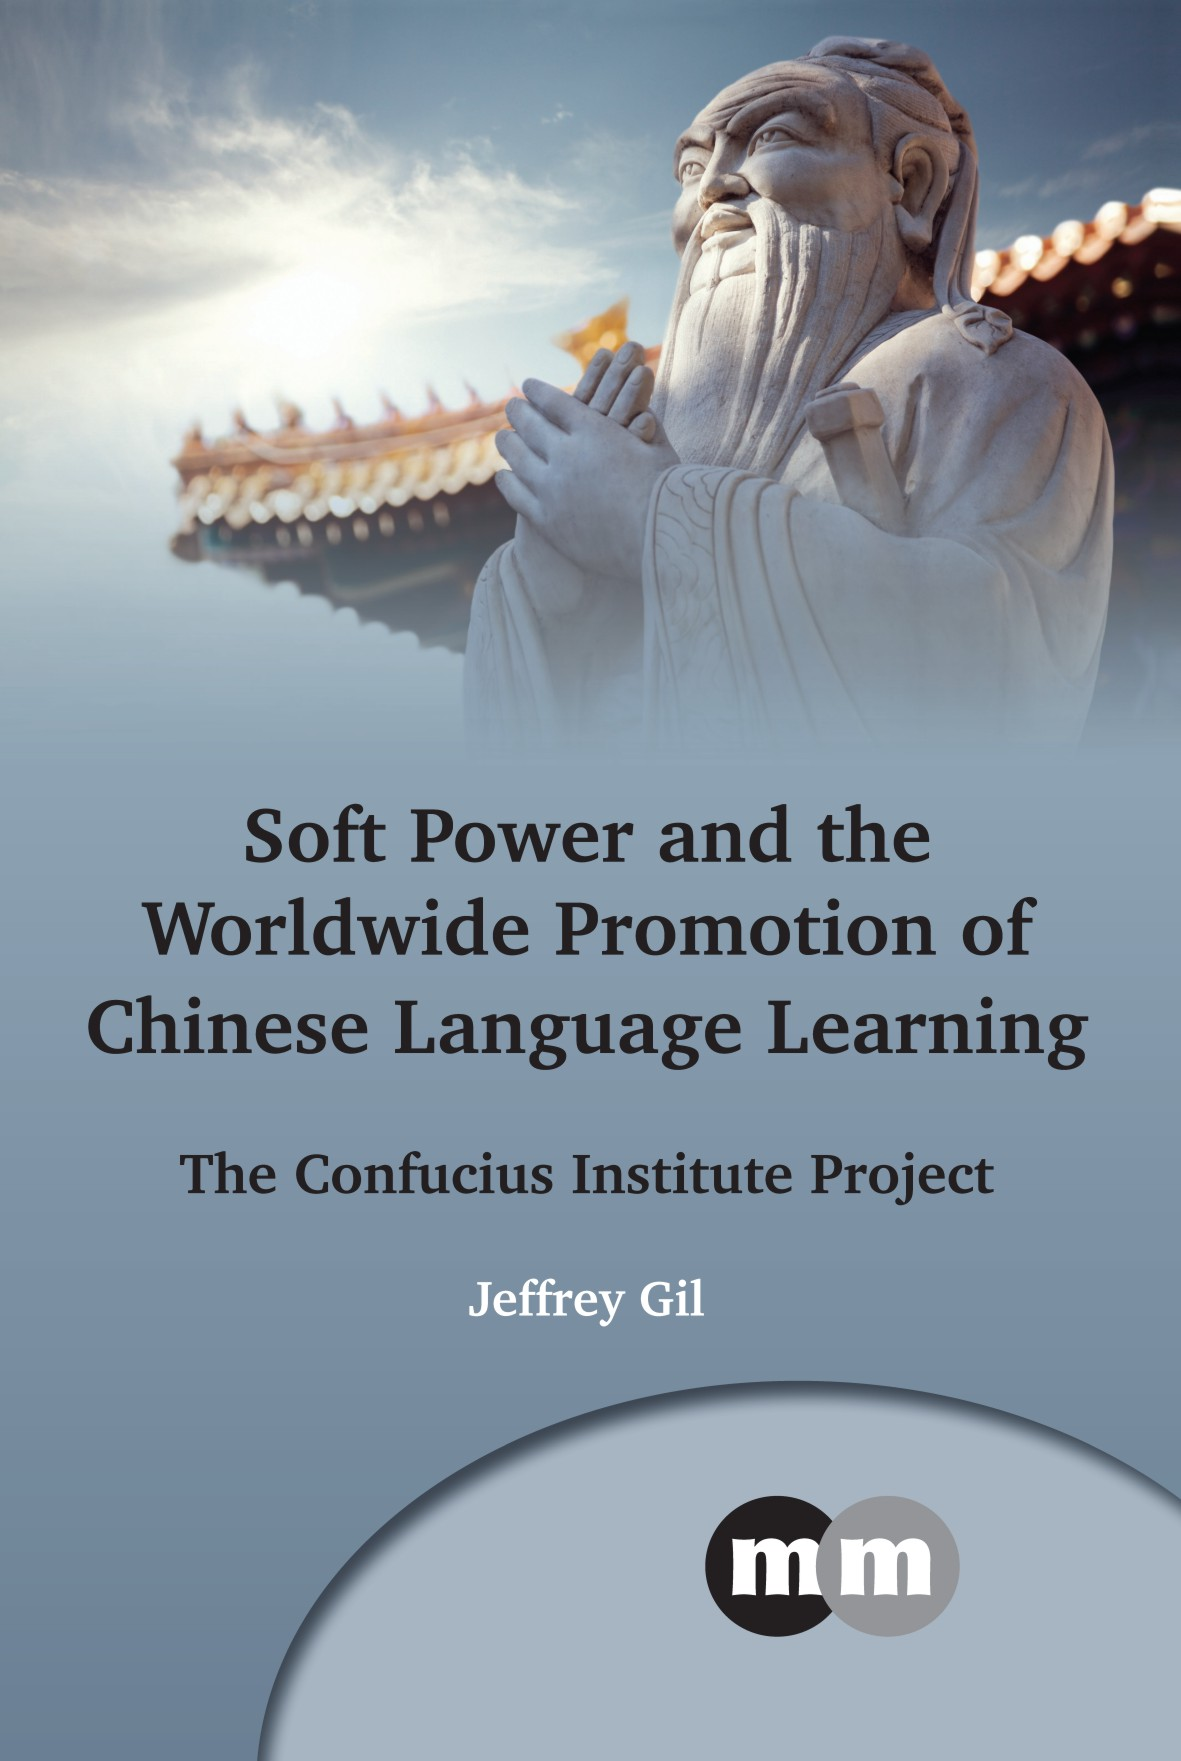 China channel view publications and multilingual matters i first became interested in chinas promotion of chinese language learning when i was a phd student in the early 2000s while writing a thesis chapter fandeluxe Image collections